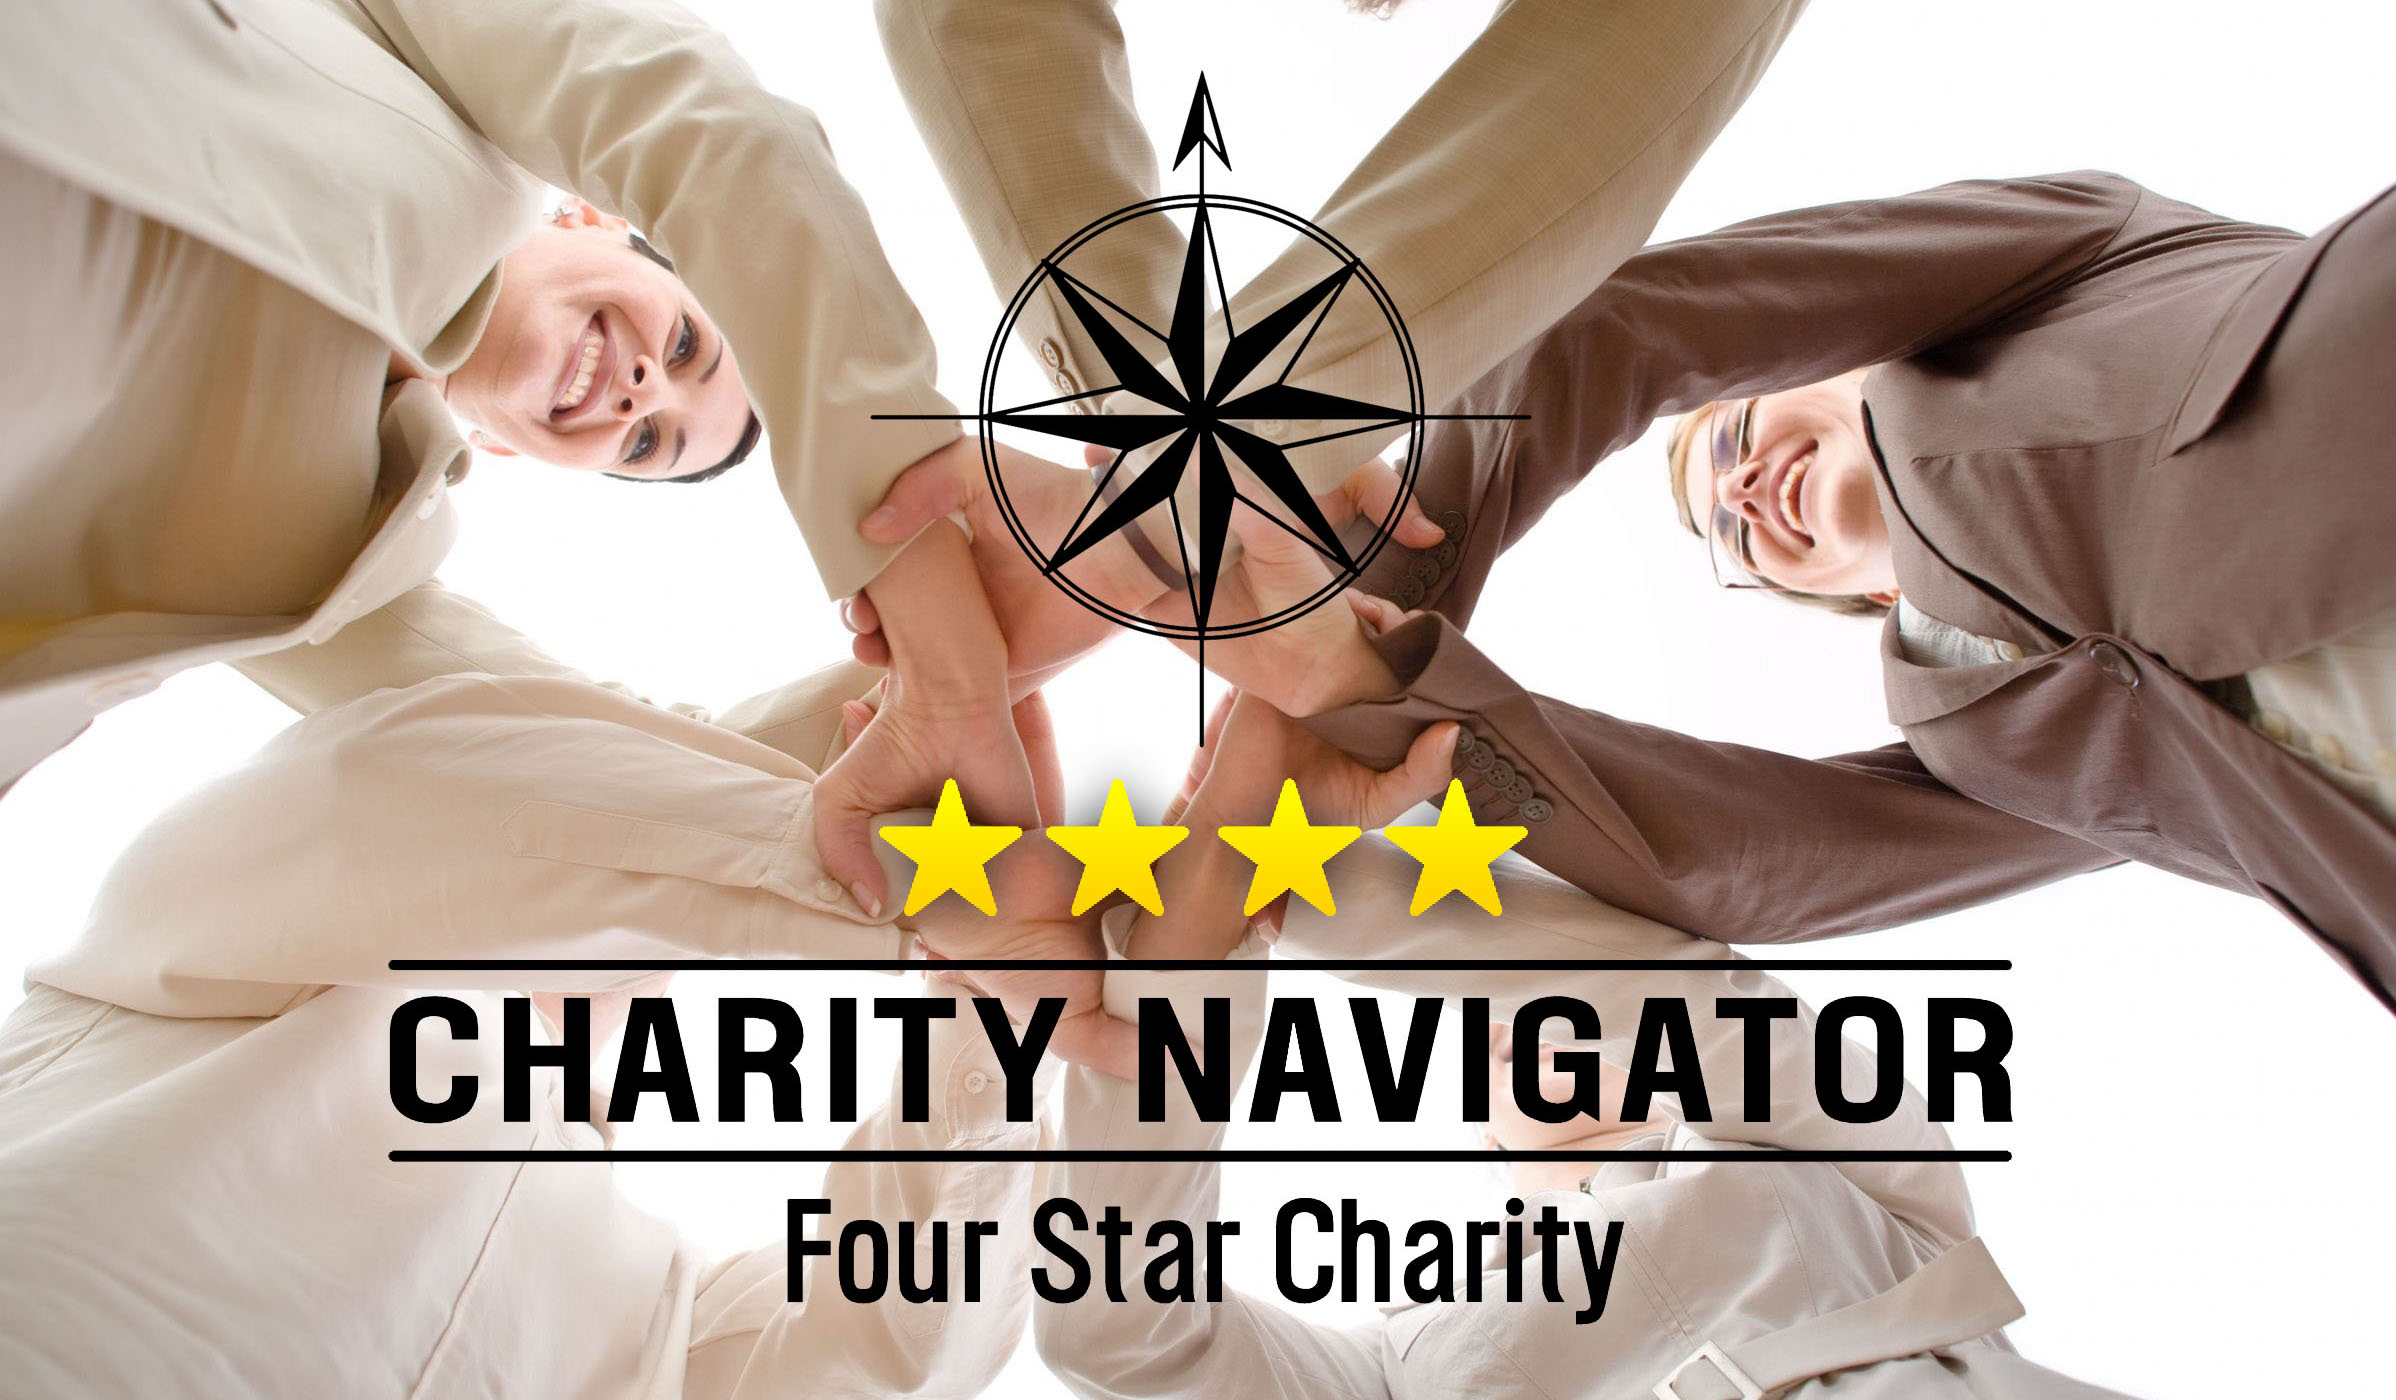 Top Charity In America | Charity Navigator 4-Star Charity